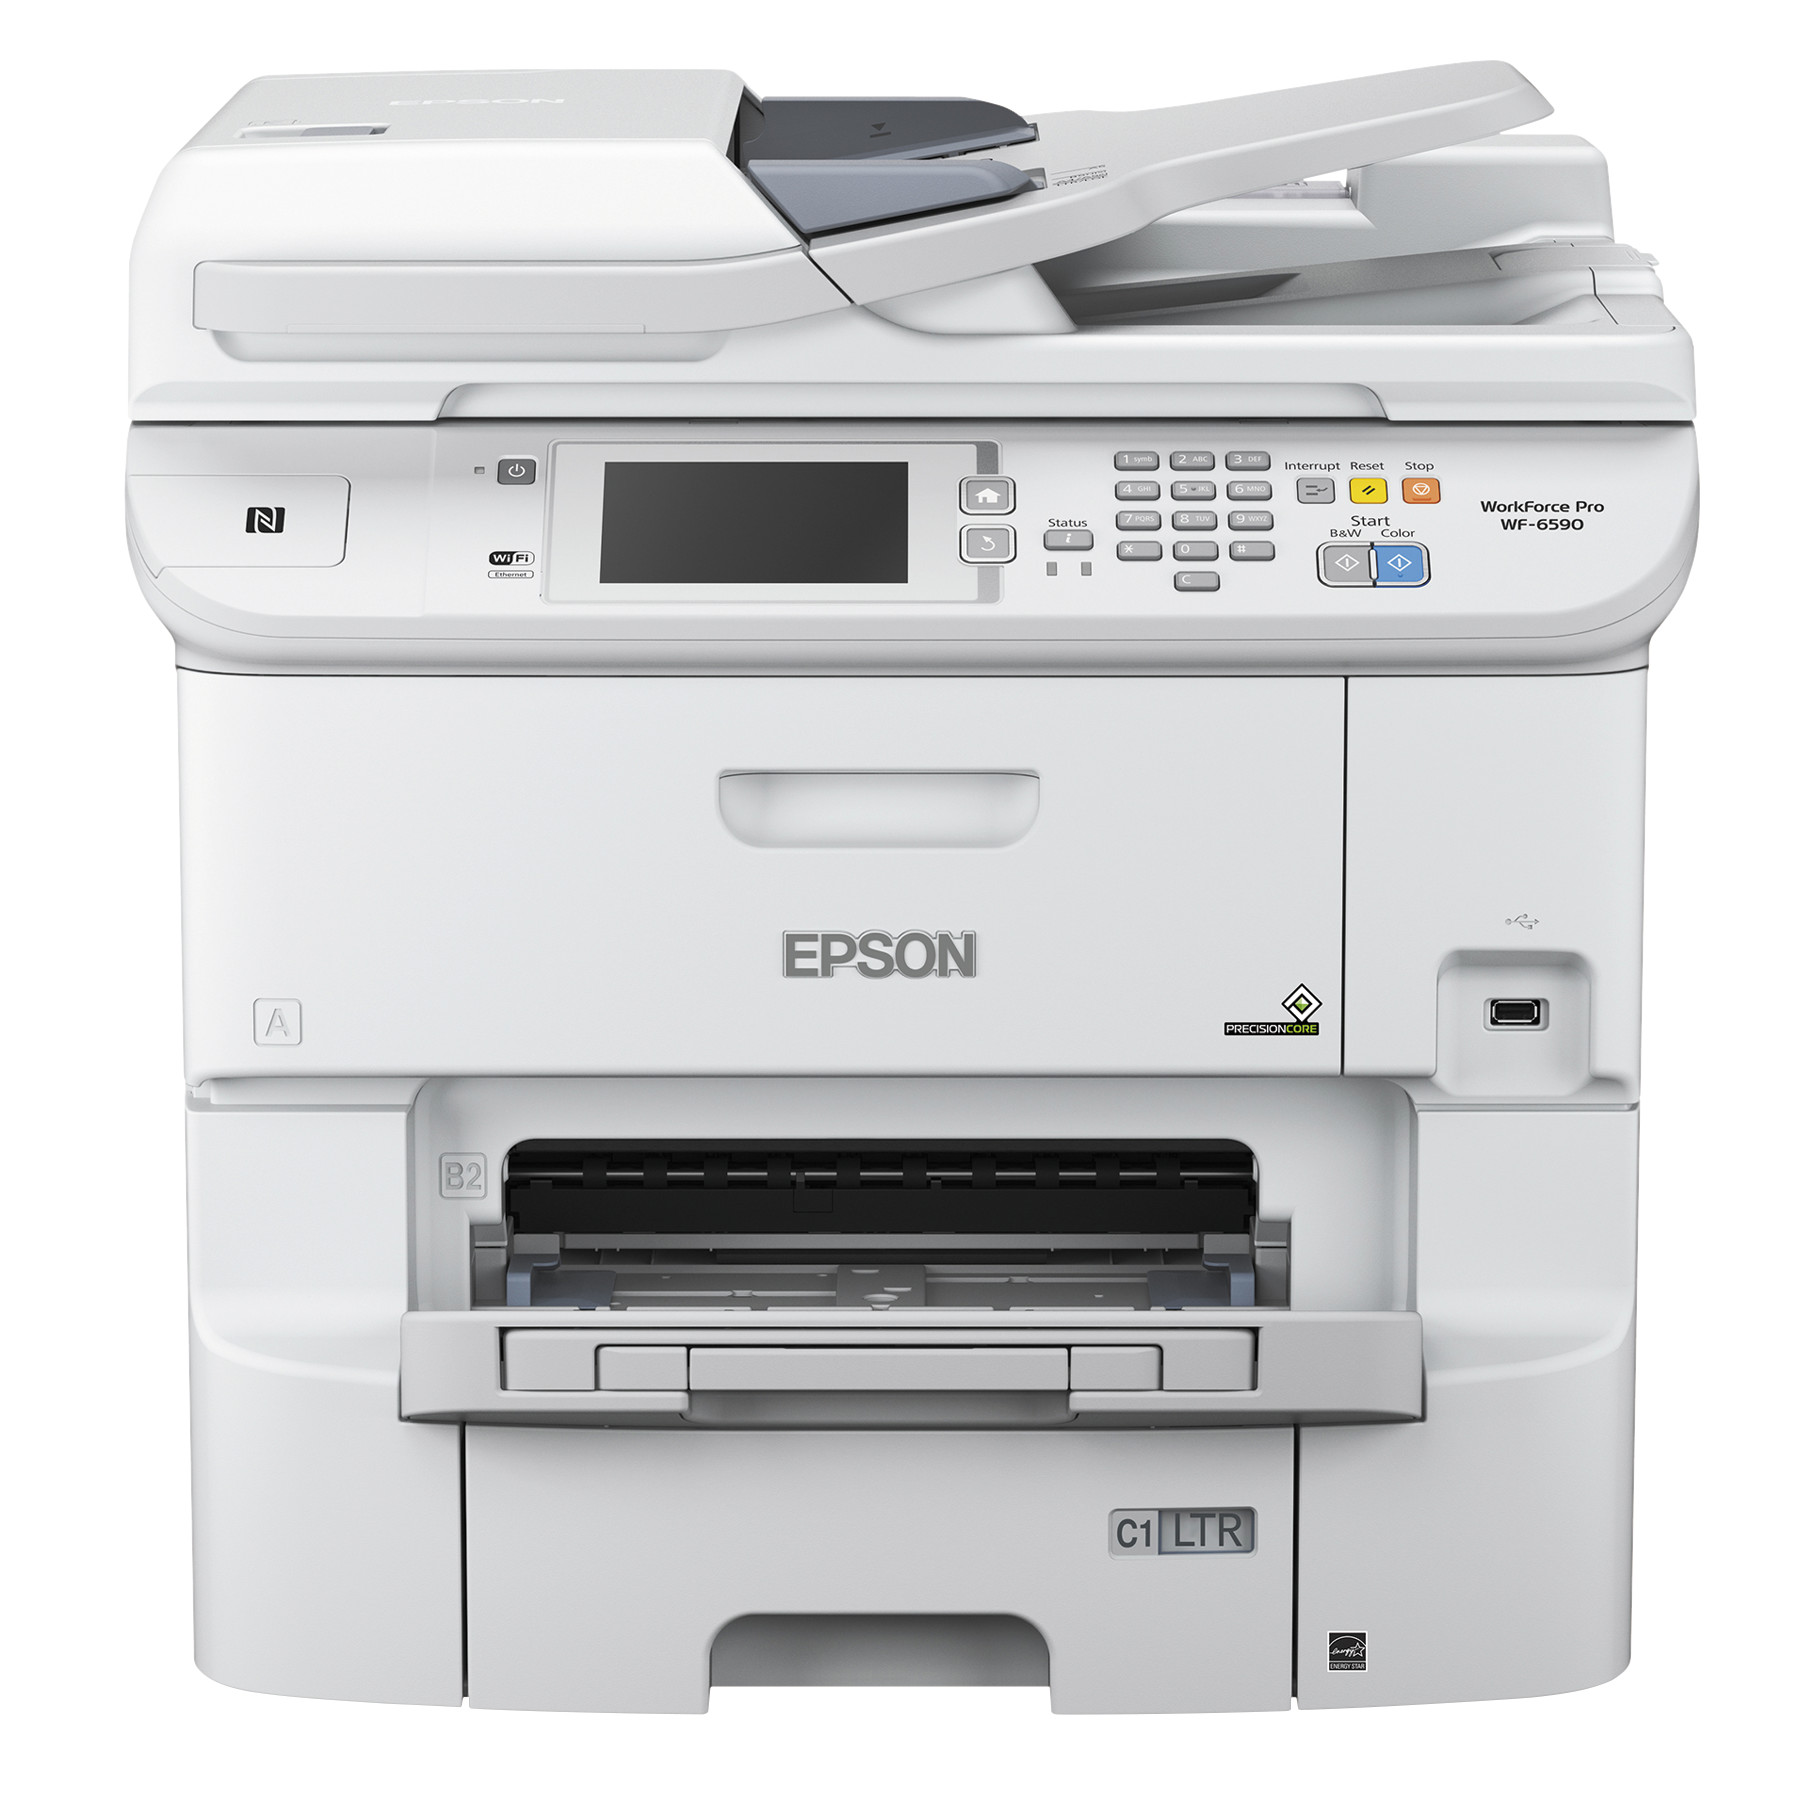 Epson WorkForce Pro WF-6590 Wireless Multifunction Color Printer, Copy/Fax/Print/Scan